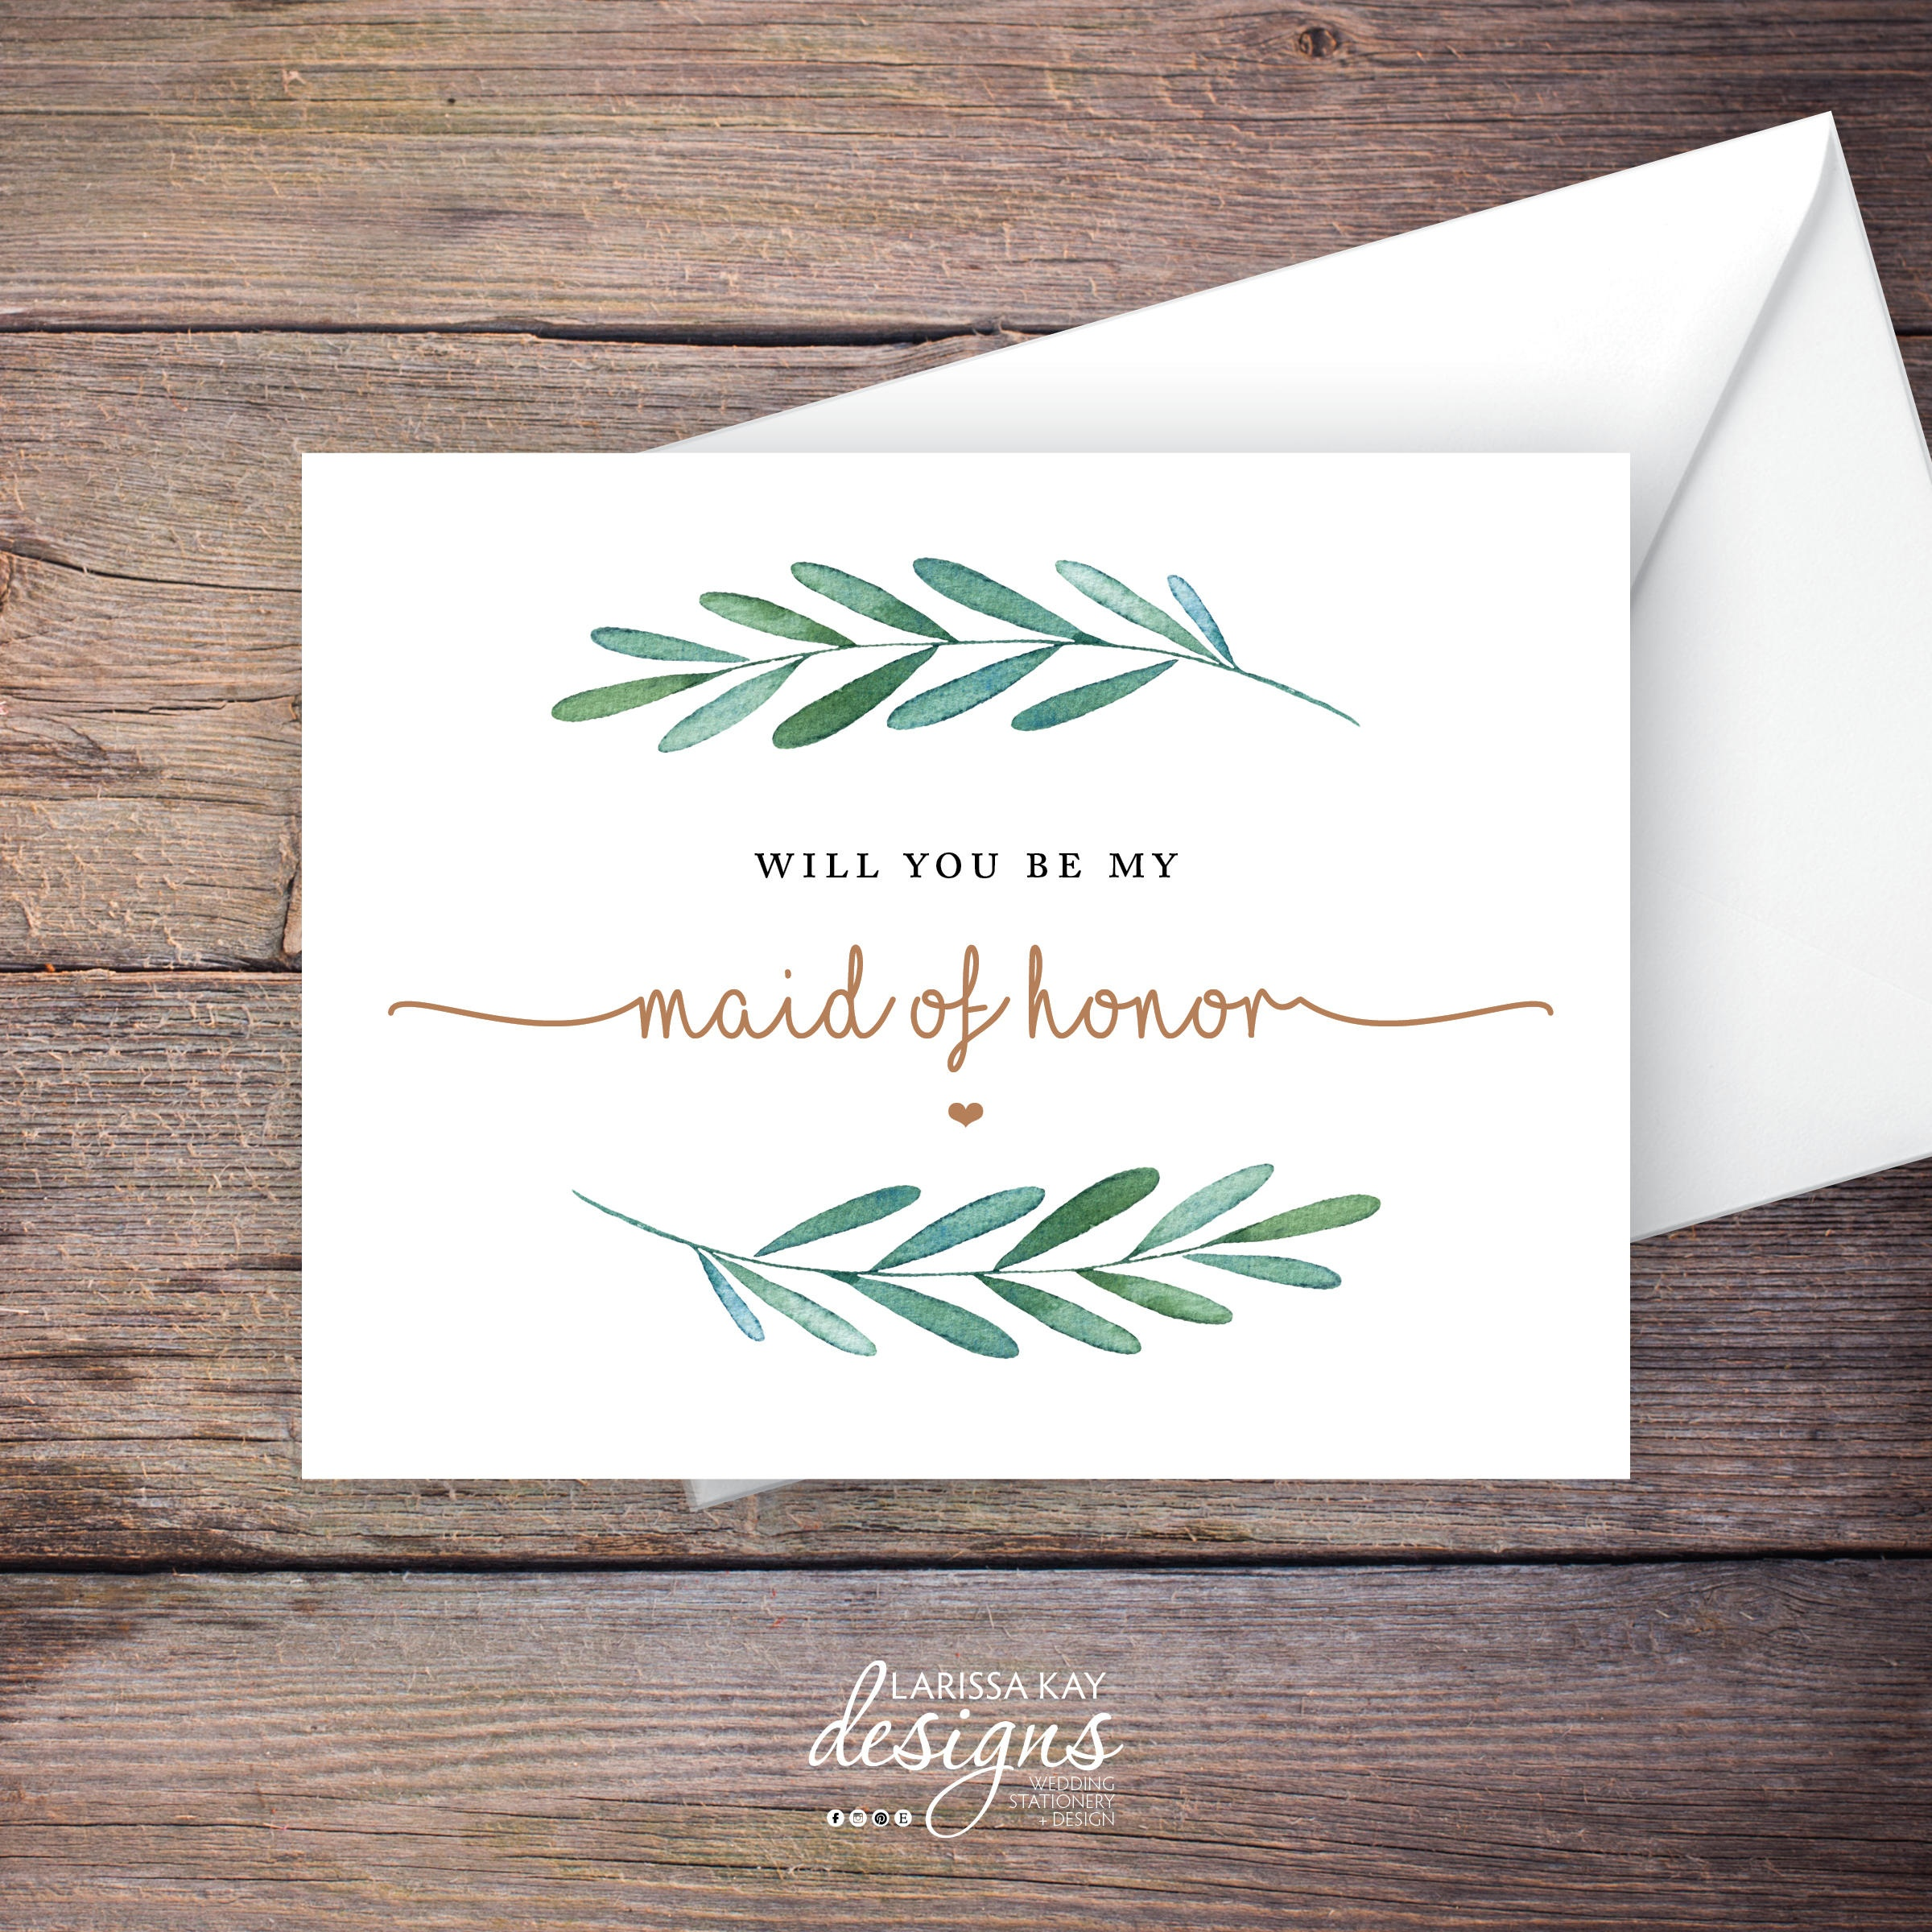 Printable Will You Be My Maid Of Honor Card Greenery Instant | Etsy - Free Printable Will You Be My Maid Of Honor Card